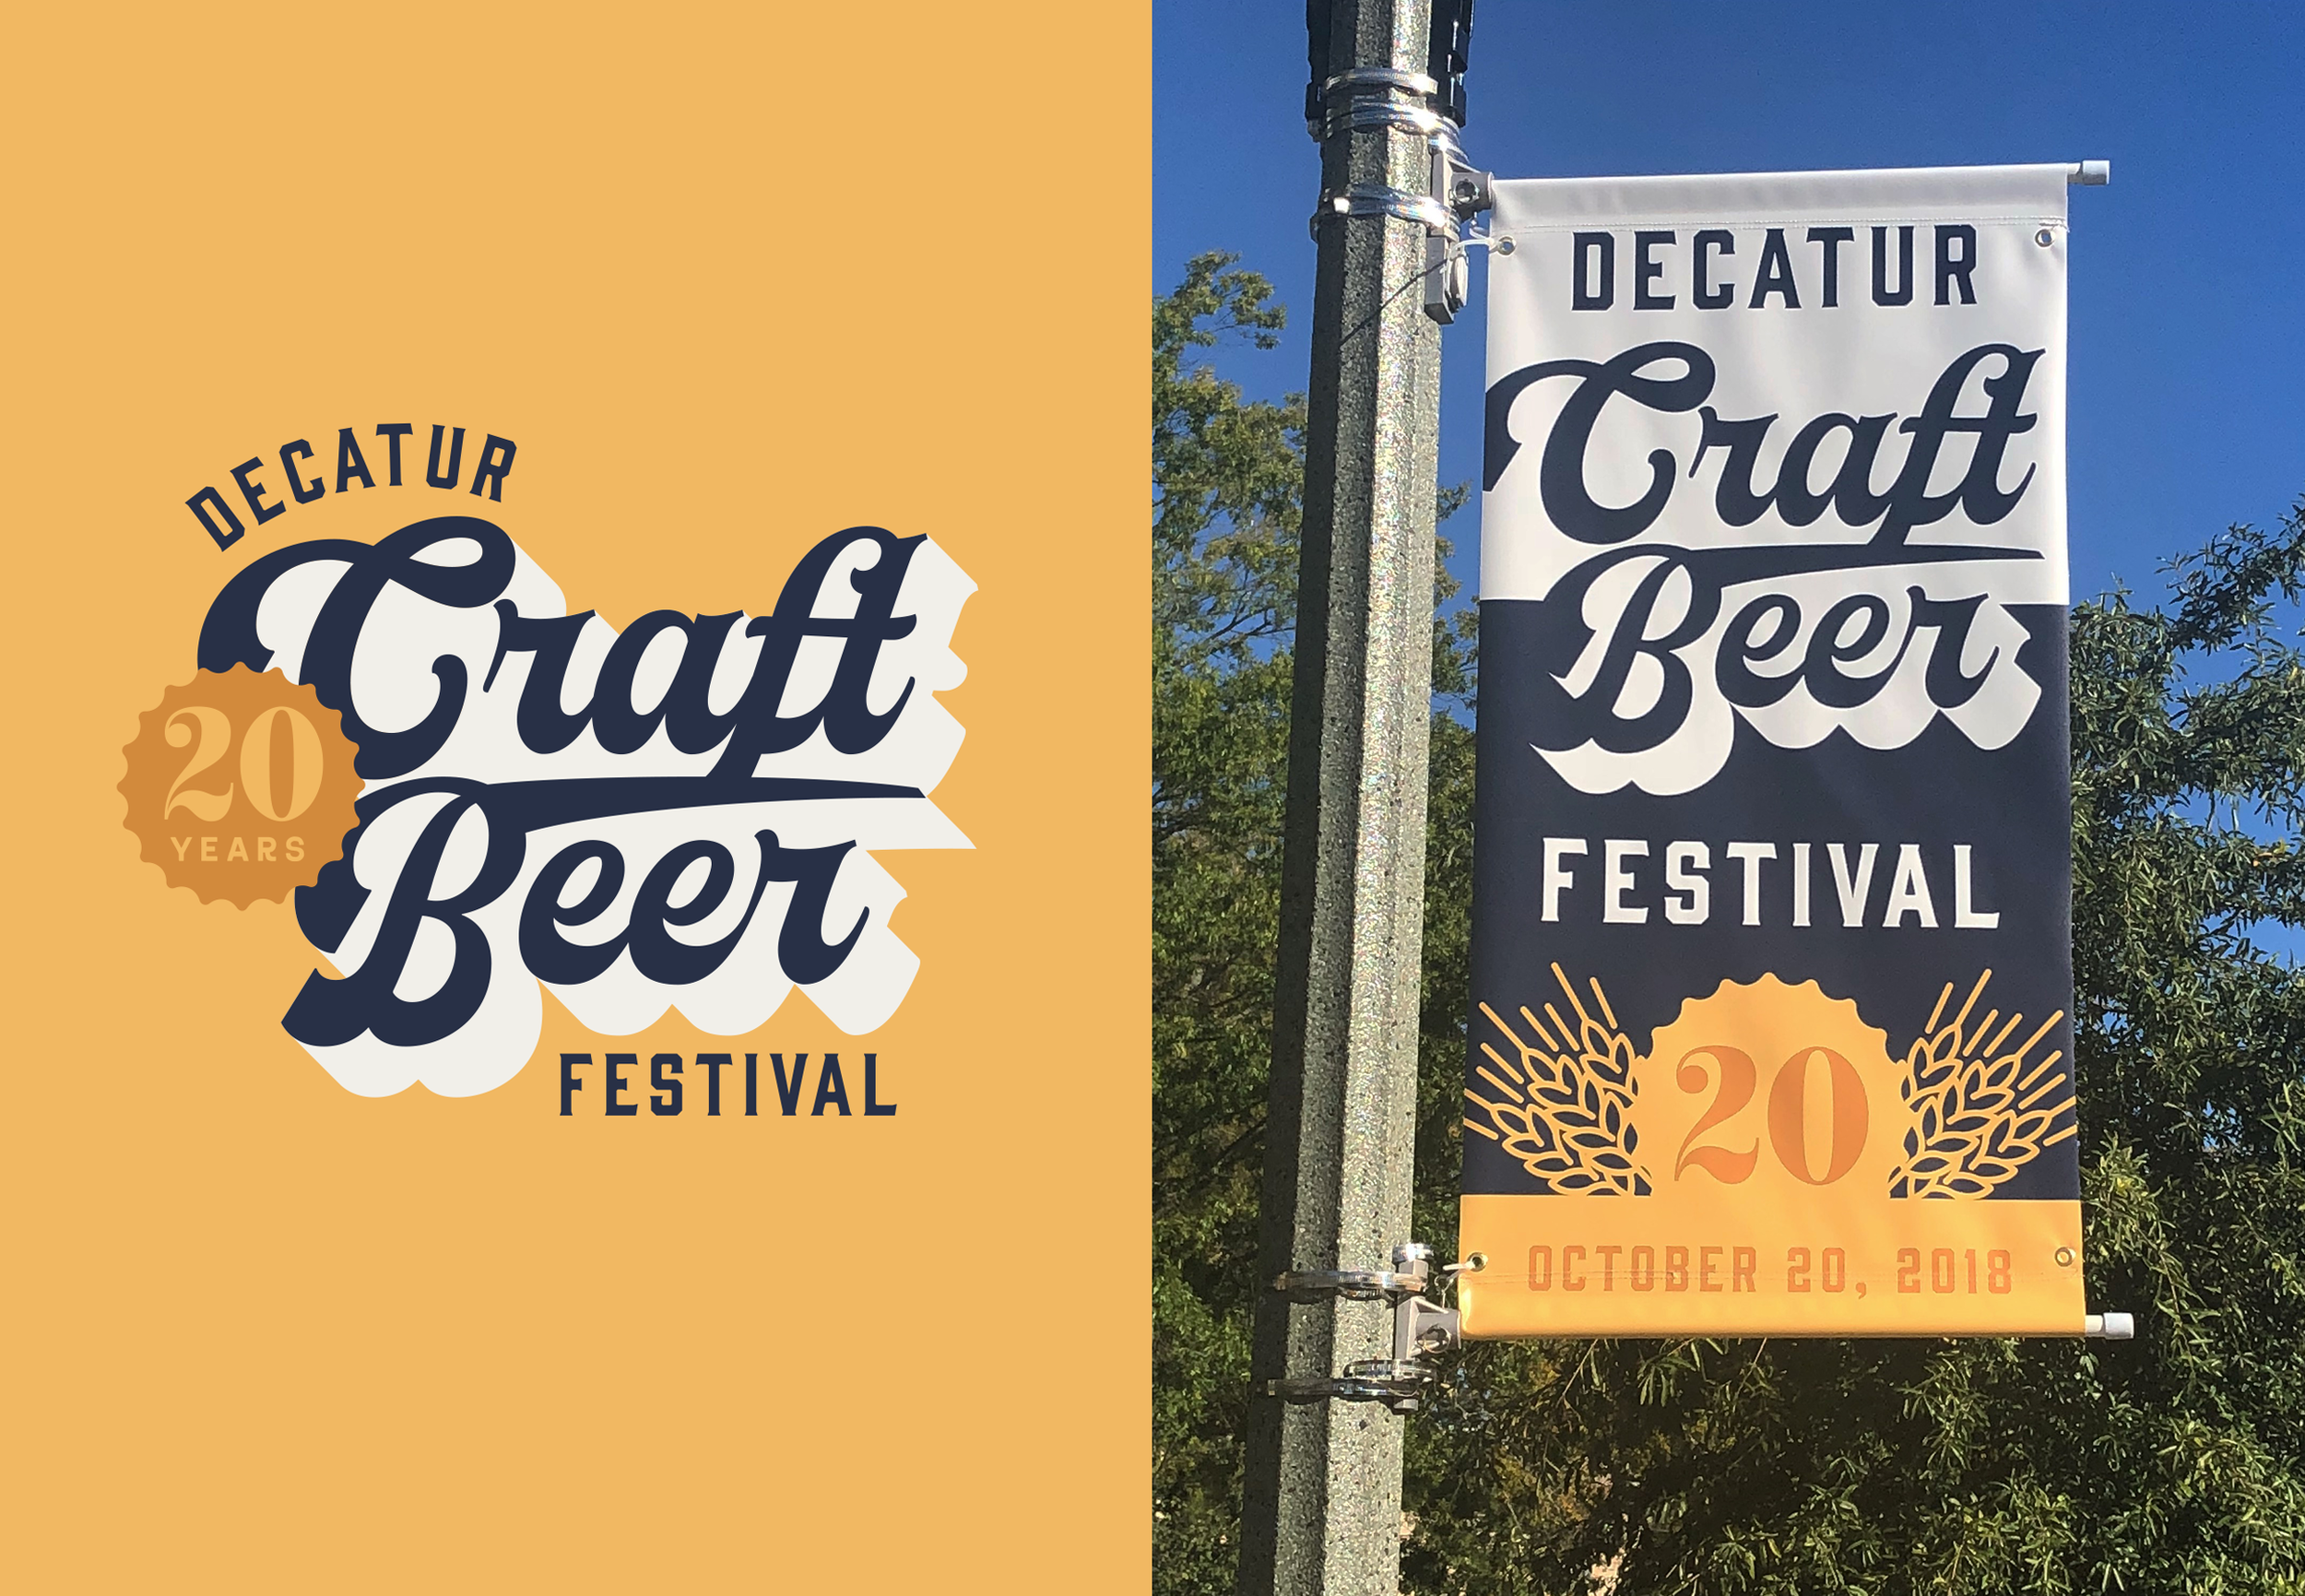 decatur-craft-beer-fest